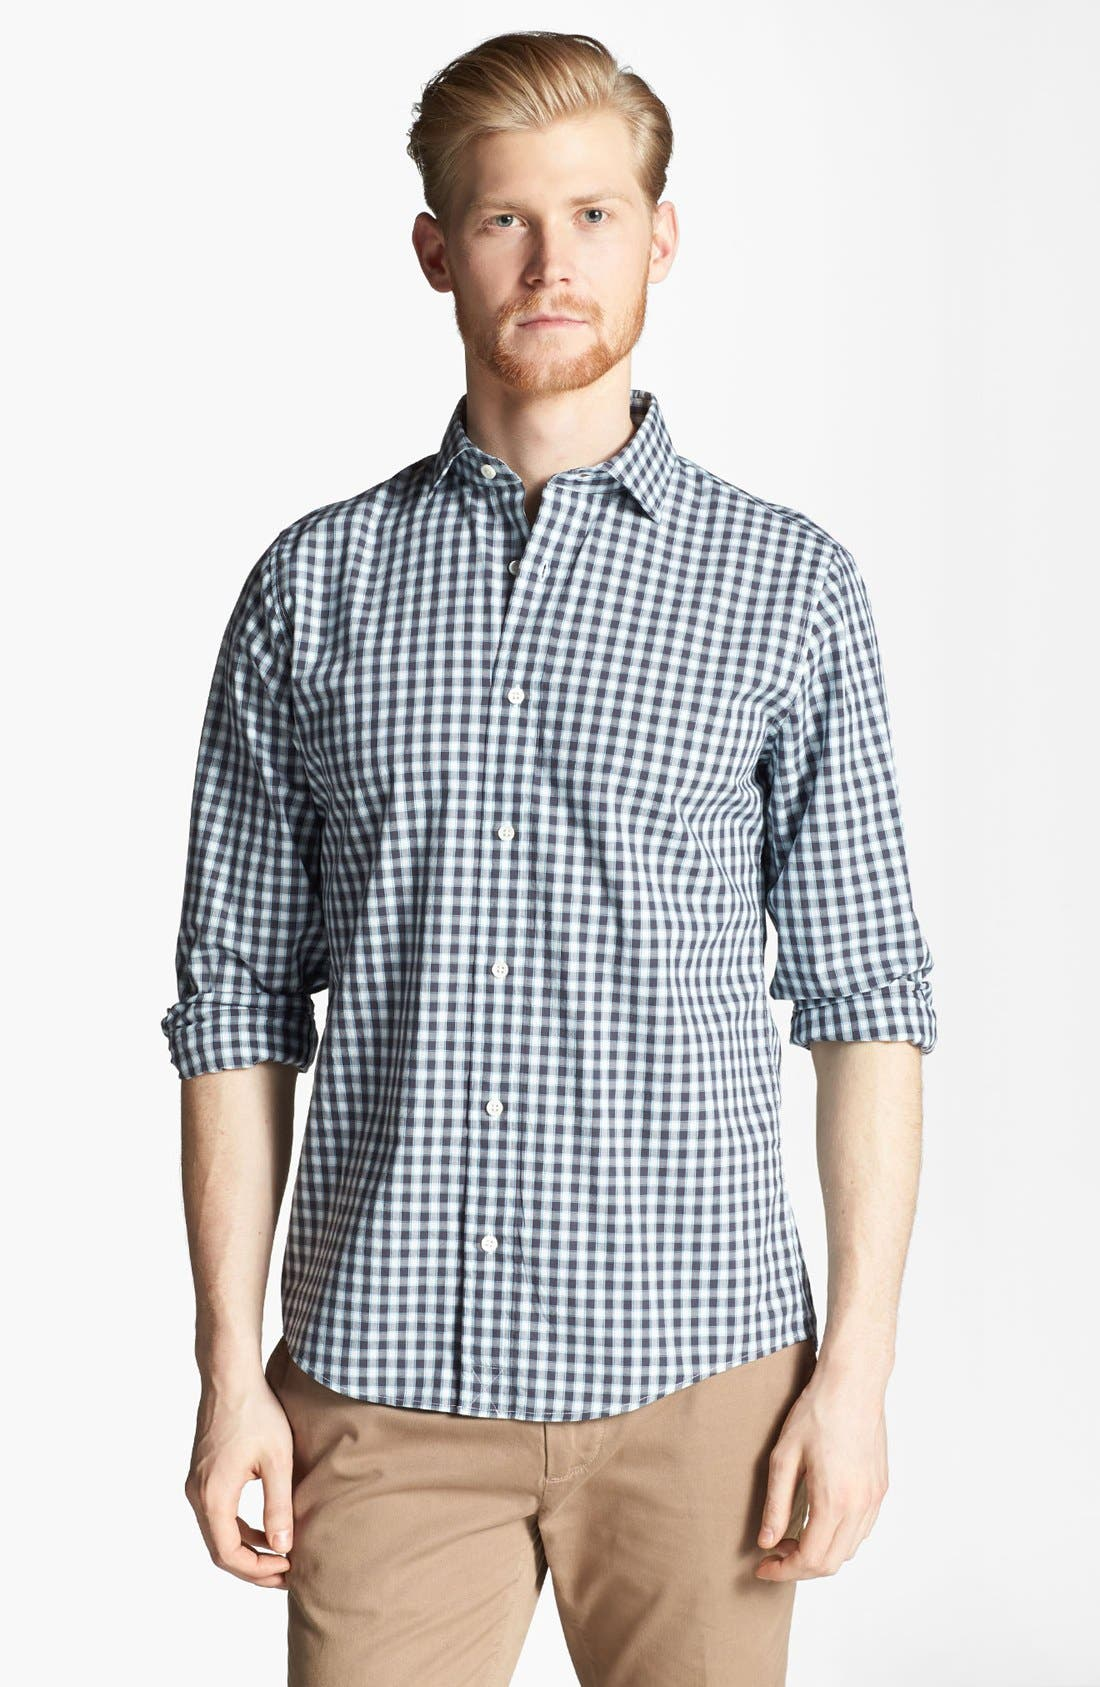 Alternate Image 1 Selected - Jack Spade 'Cameron' Gingham Check Woven Shirt